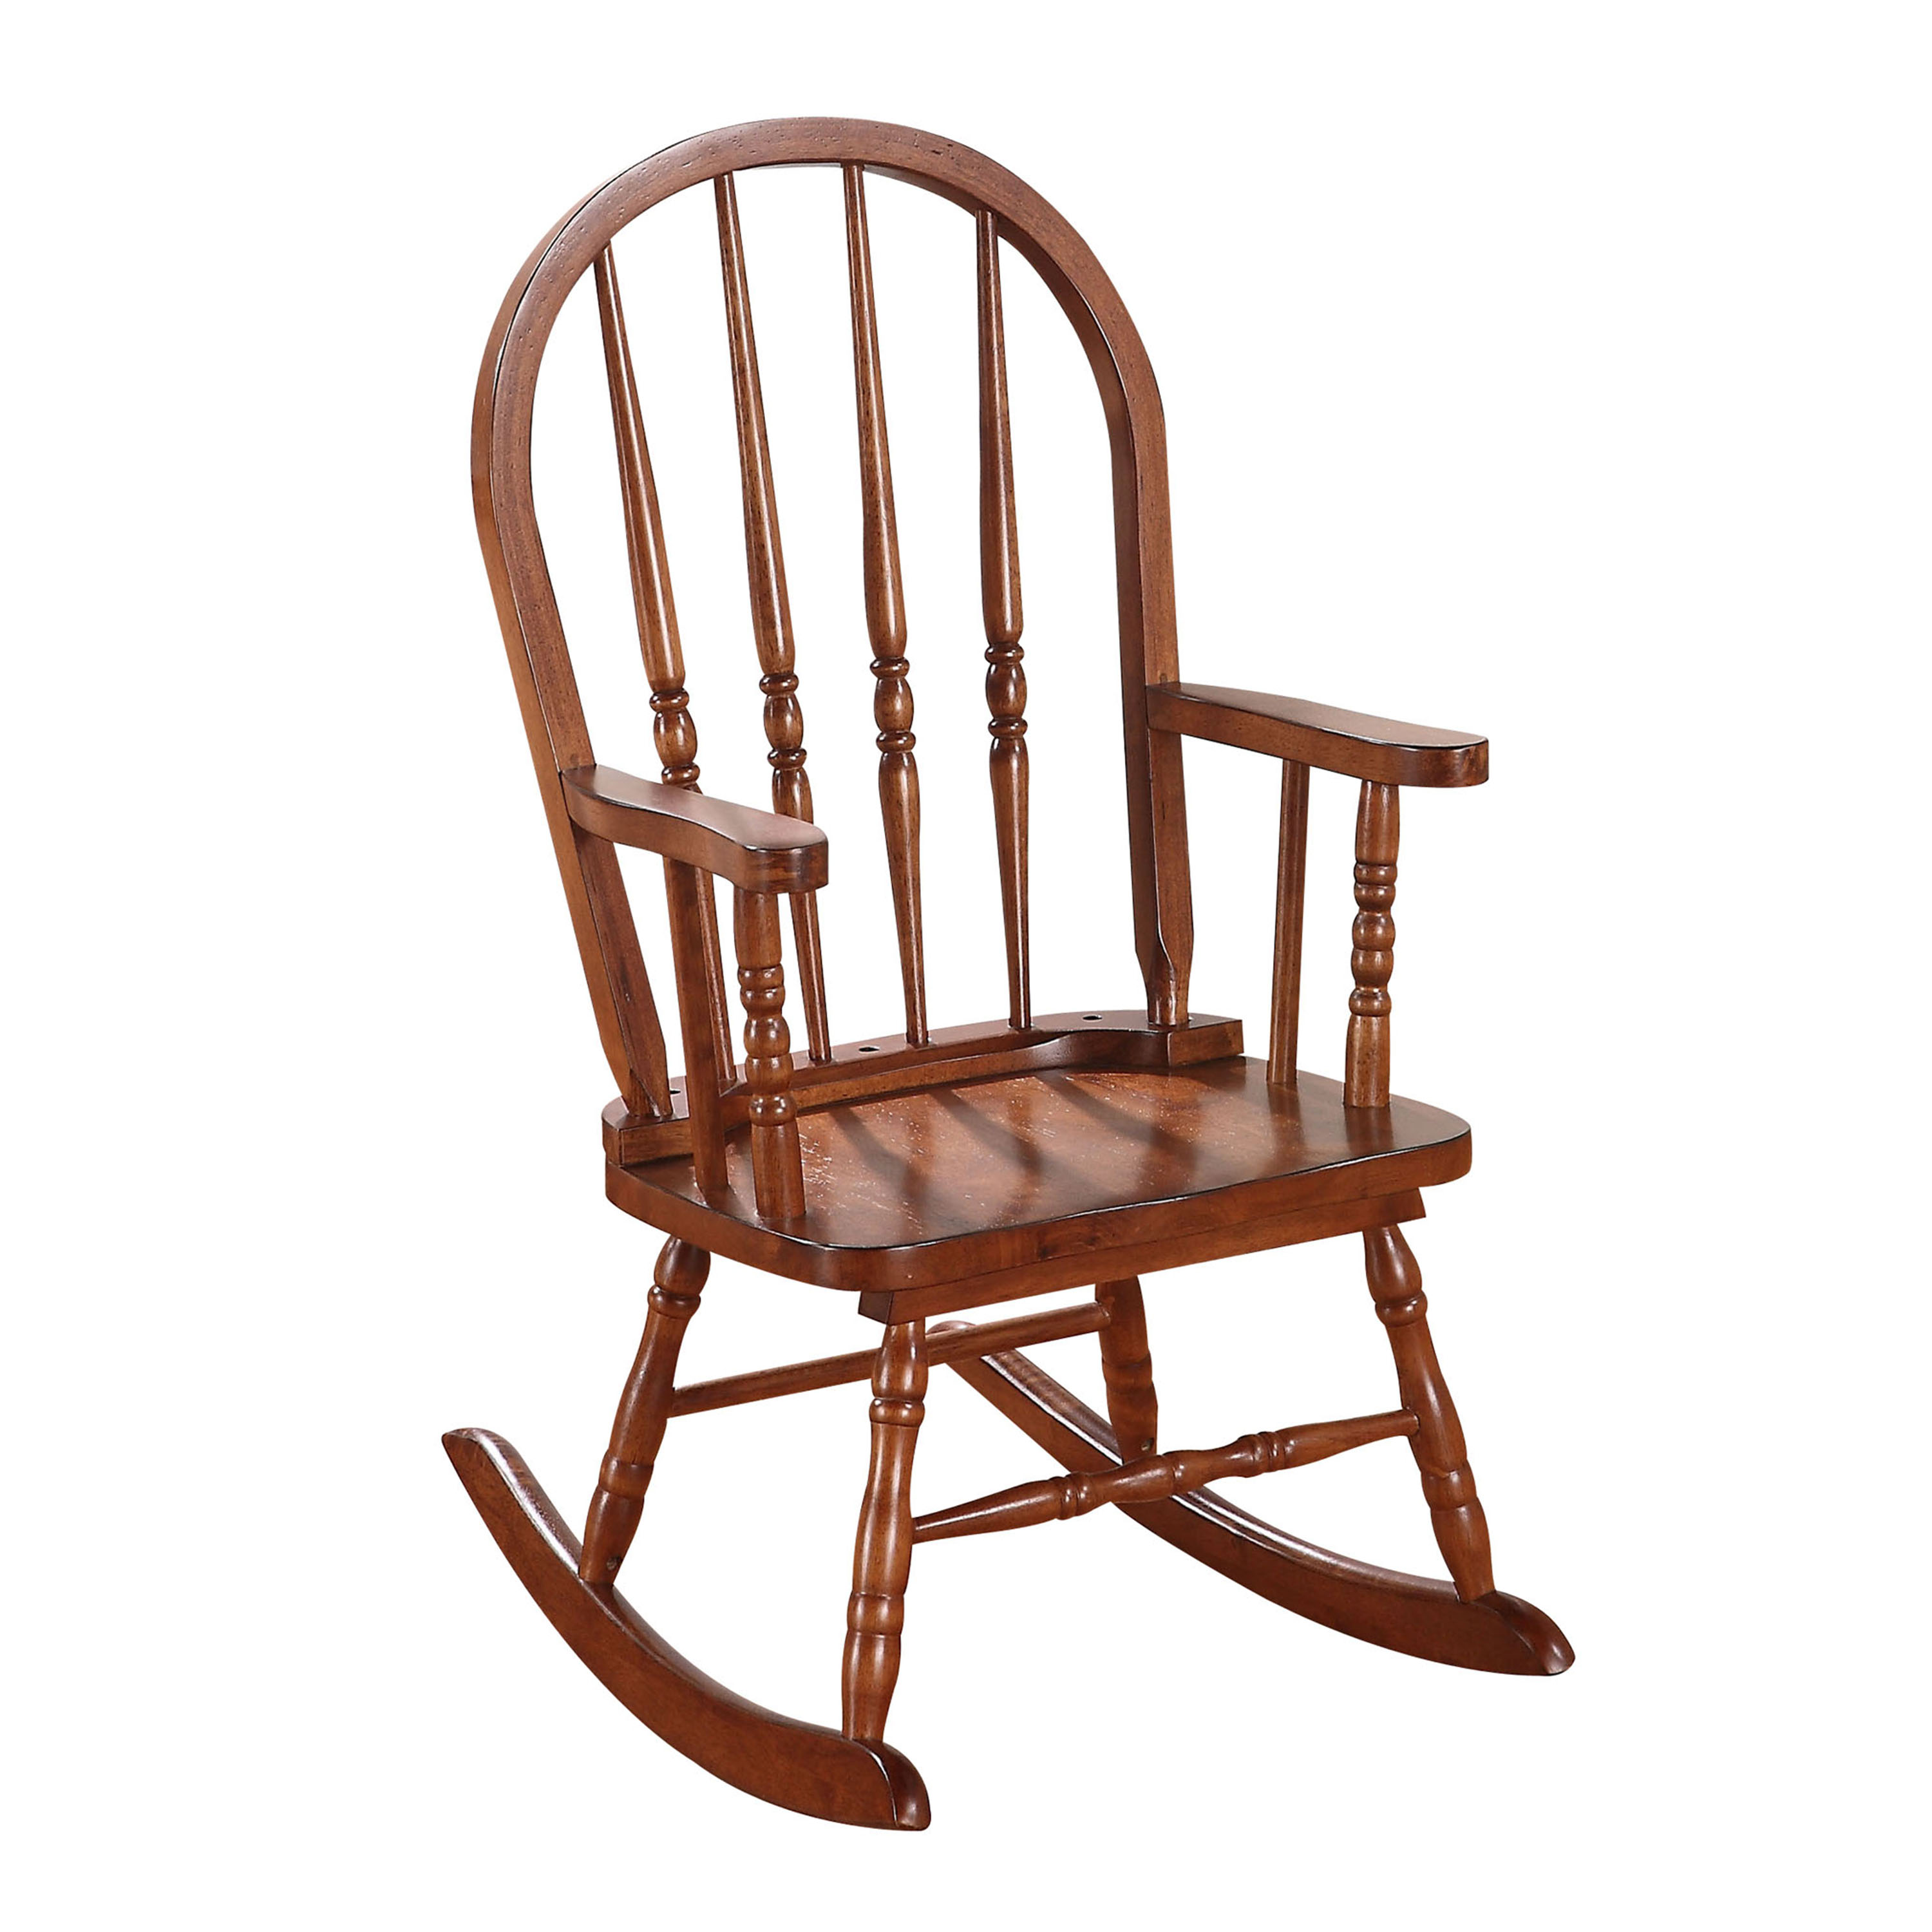 ACME Aatto Youth Rocking Chair, Tobacco